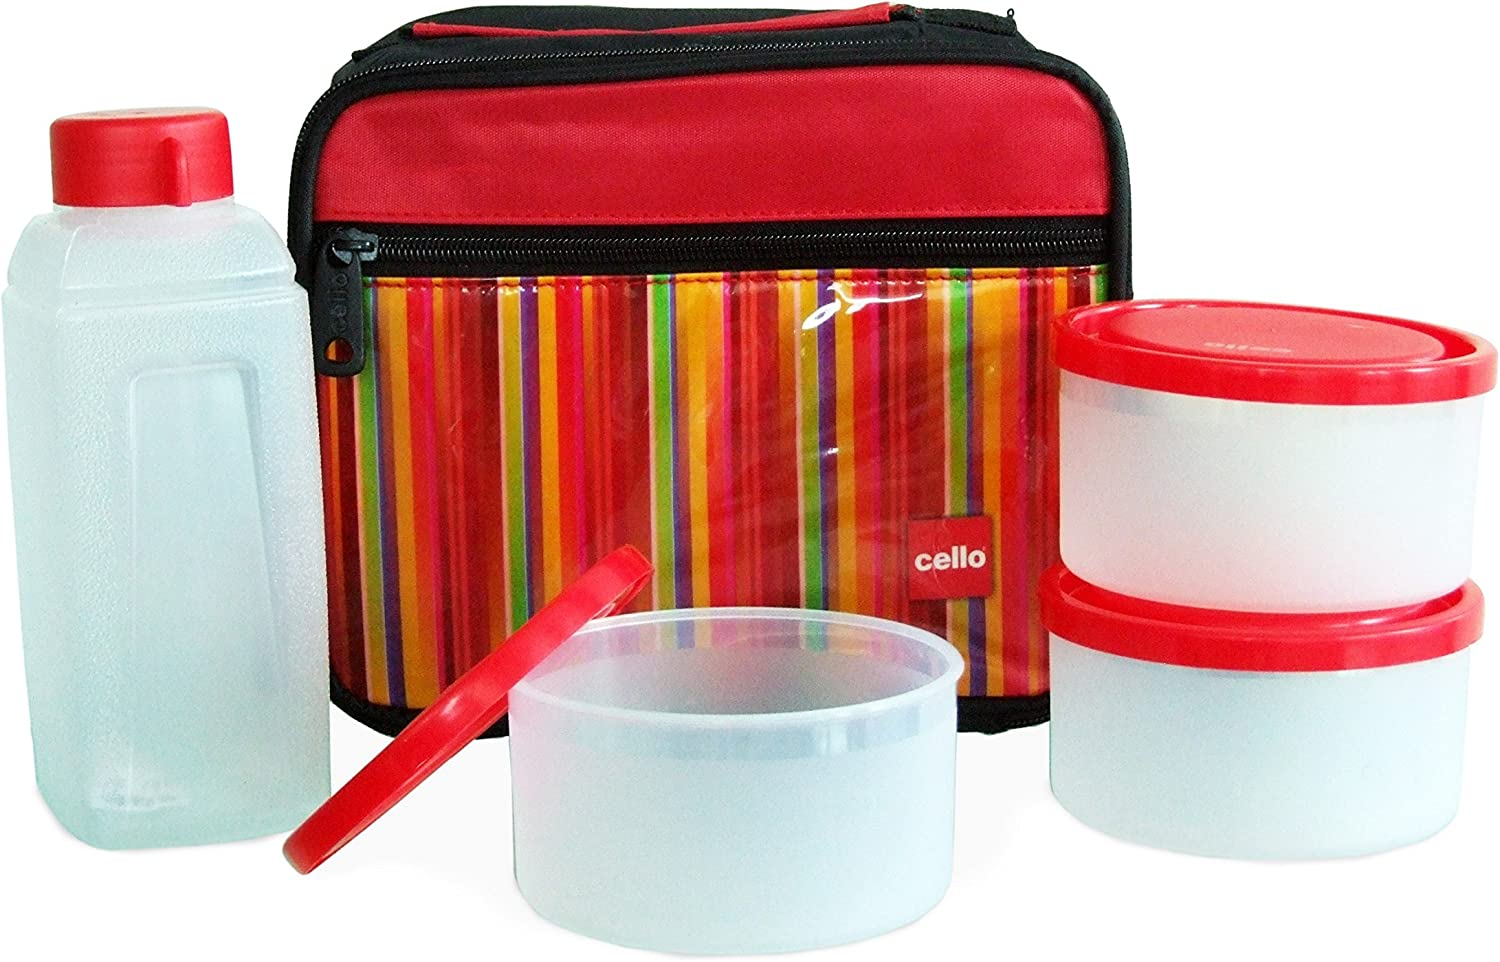 Cello Go 4 Eat We OFFer at cheap prices Soft Max 88% OFF Touch Set Lunch Box Red of Plastic